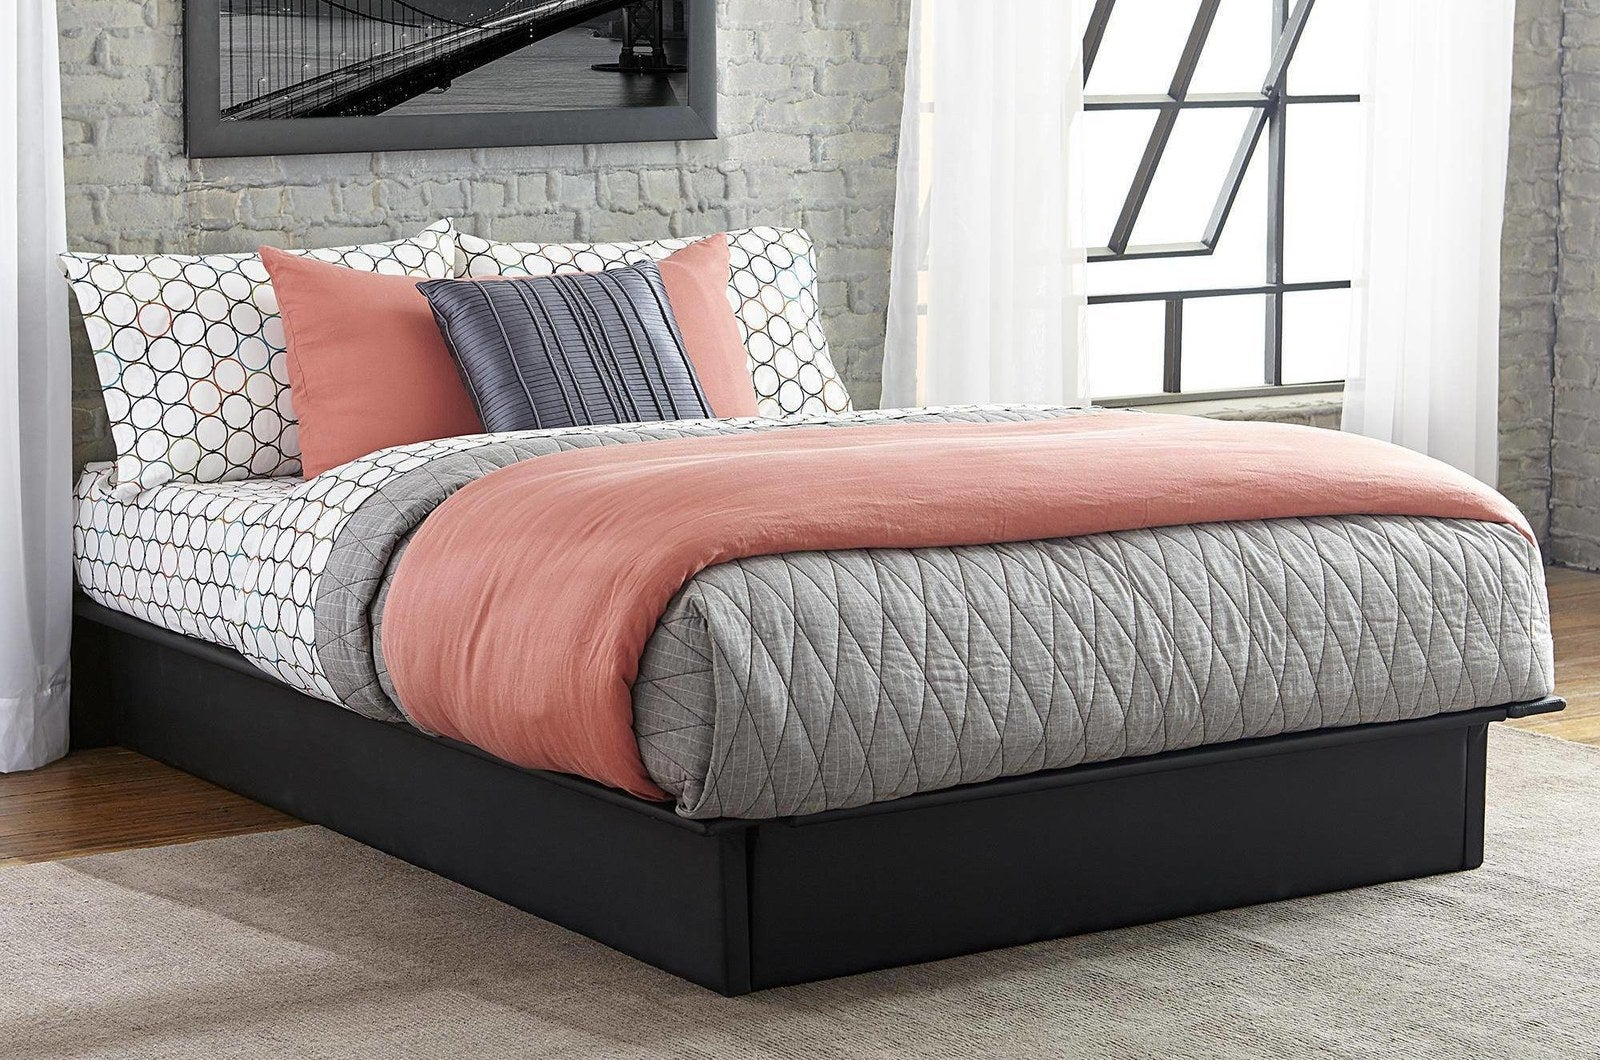 """Promising review: """"Love this platform bed. It's affordable, looks nice and is perfect for a first apartment. I was concerned about my mattress sliding around on it, but it stays in place."""" —NFJFPrice: $119+ (available in sizes twin-queen and two colors)"""